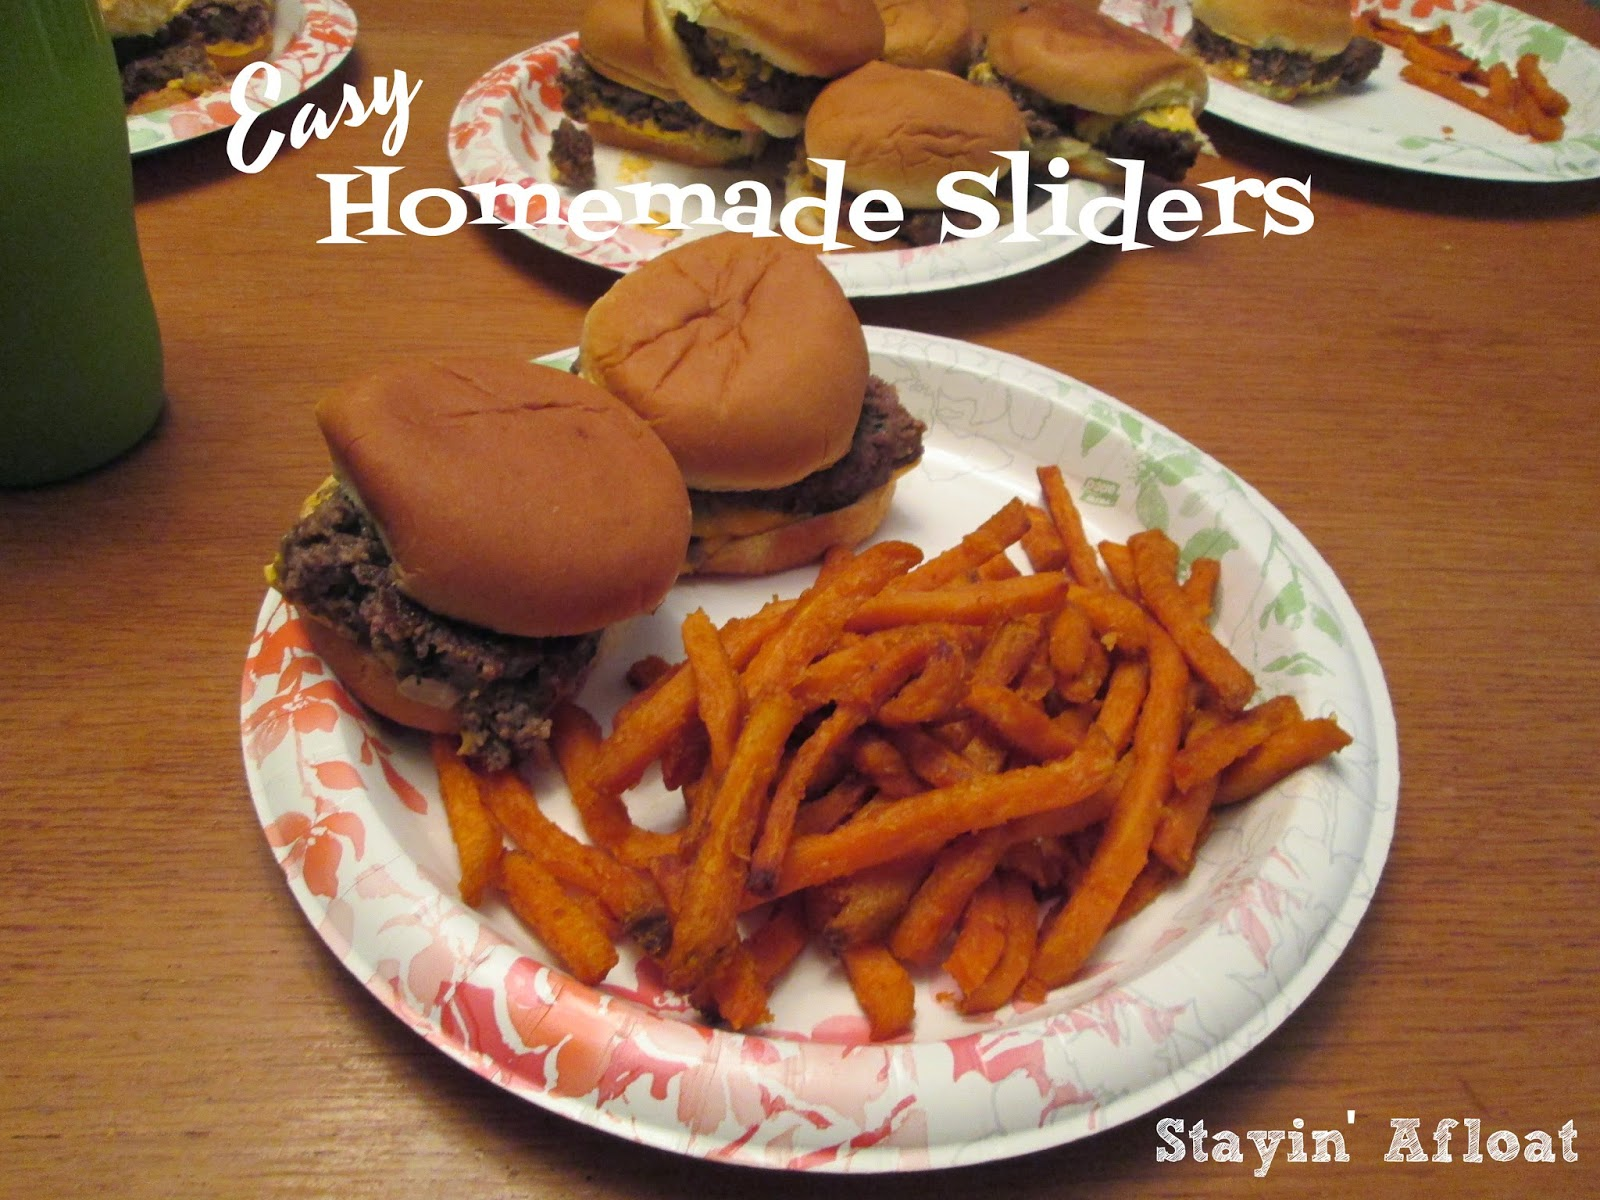 http://www.stayin-afloat.com/p/easy-homemade-sliders.html